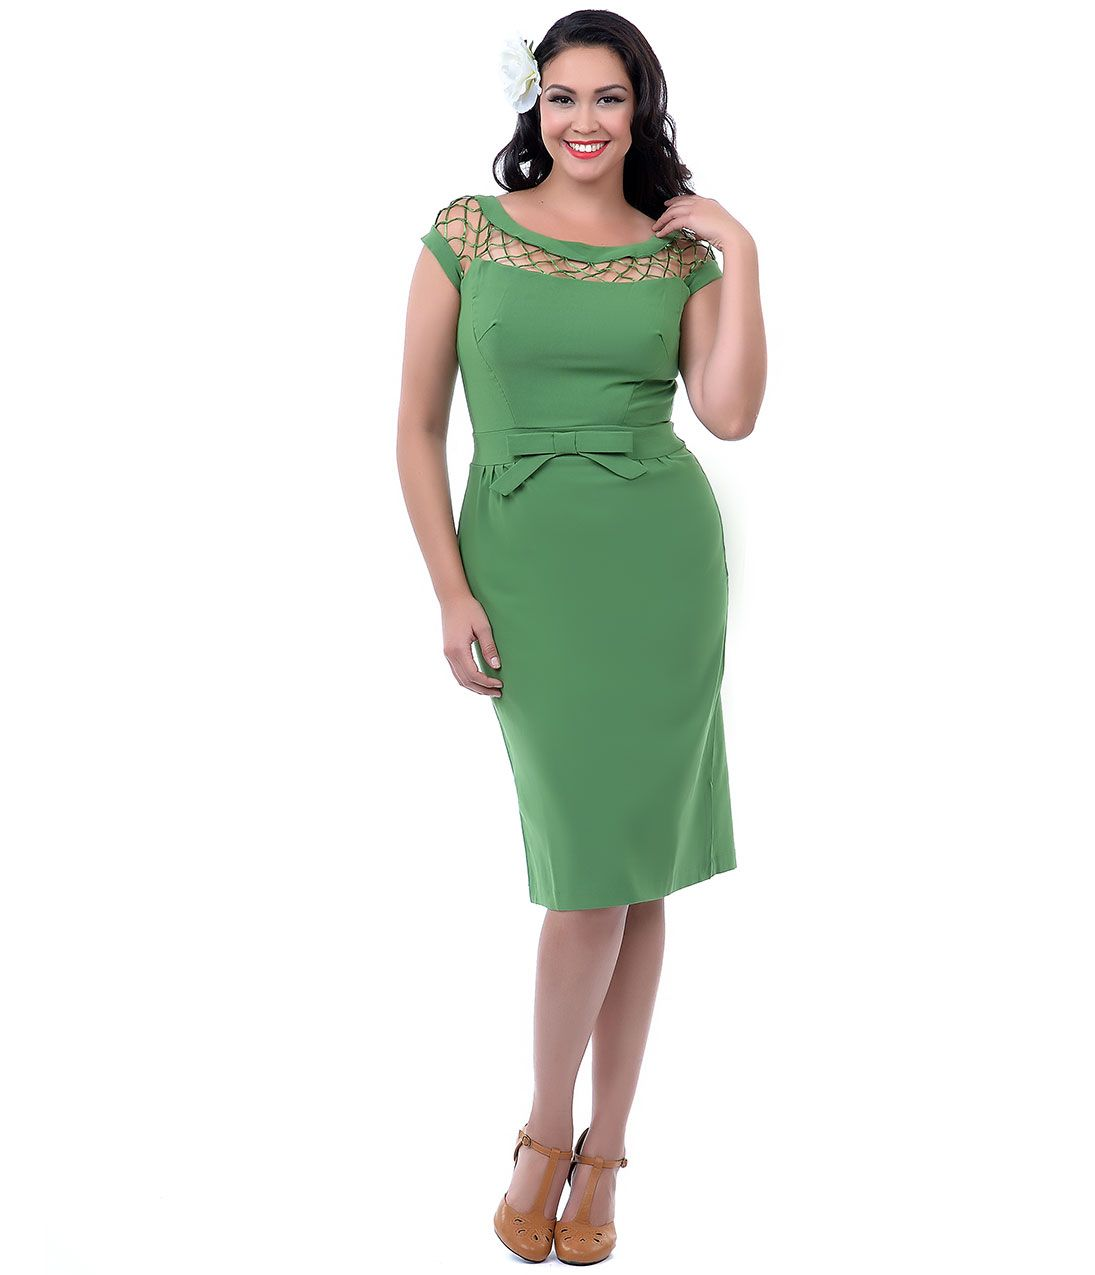 Wiggle Dresses for Sale -1940s, 1950s, 1960s Styles   See ...